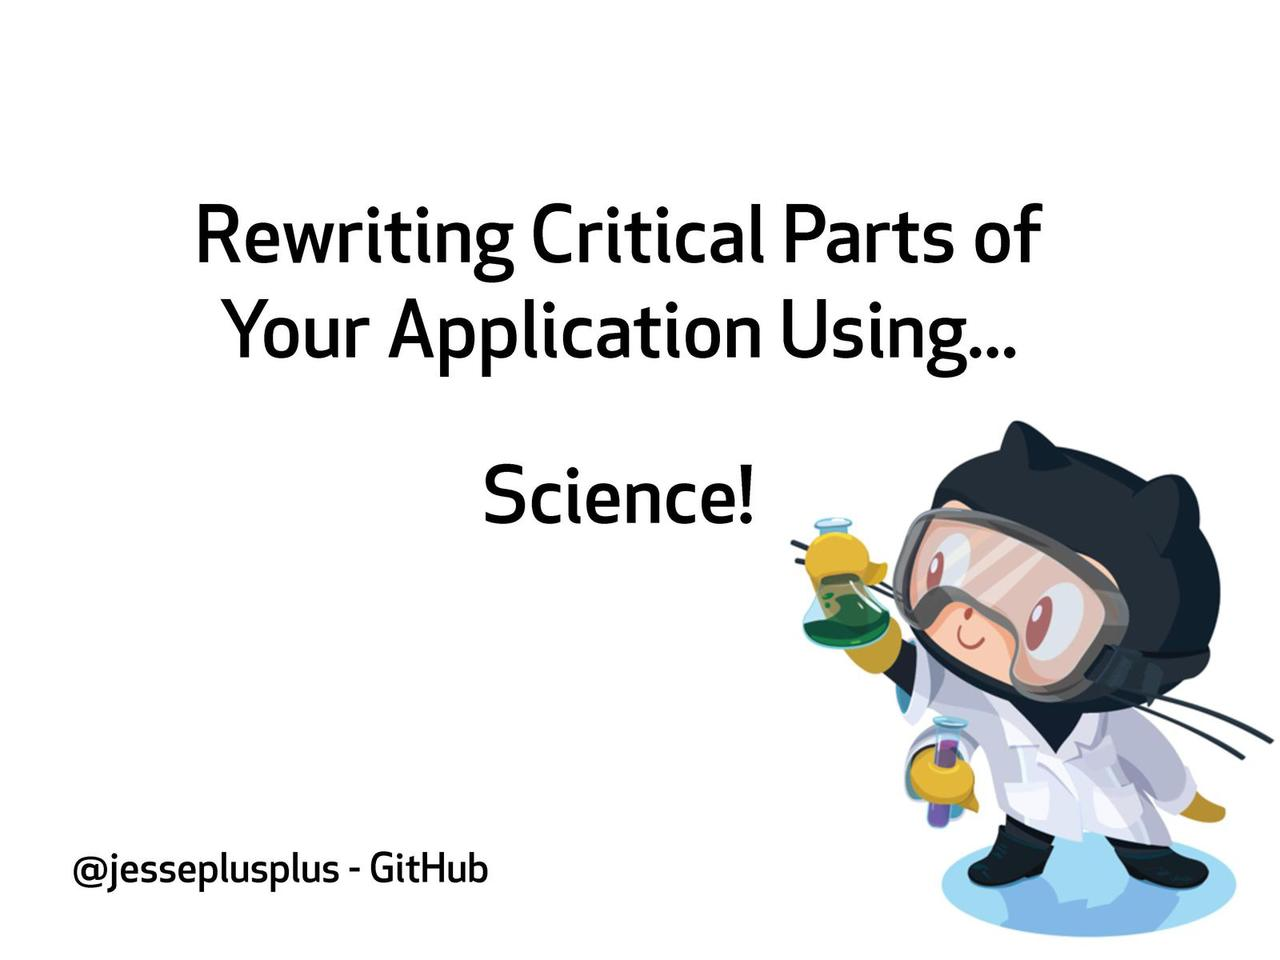 Rewriting Critical Parts of Your Application Using... Science!